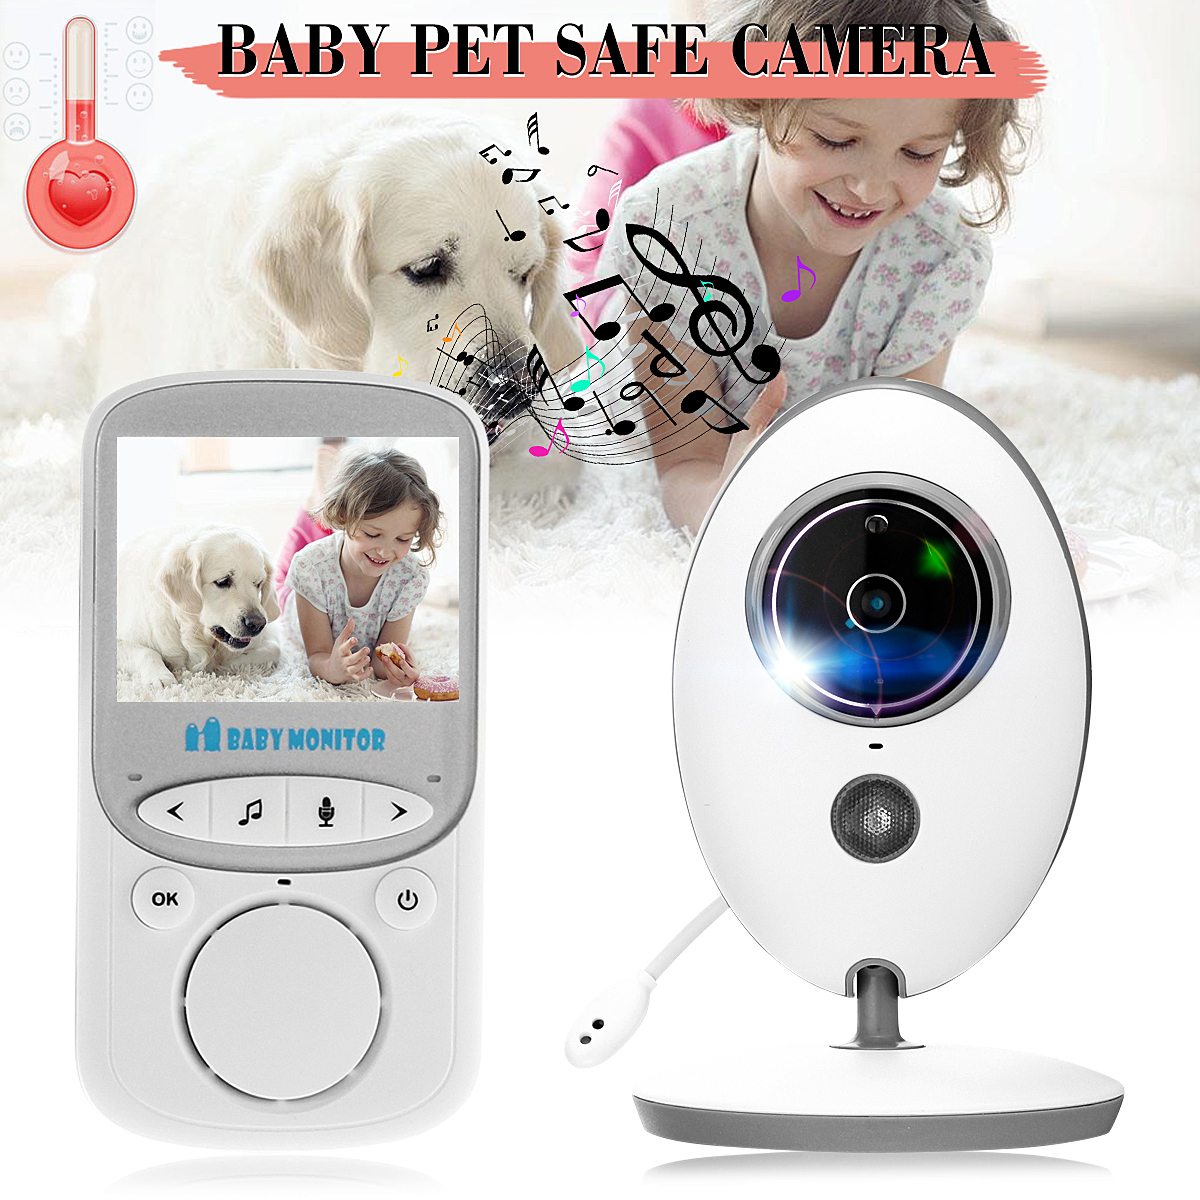 2.4GHz Wireless Baby Monitor LCD Audio Talk Night Vision Digital Video Temperature Baby Healthy Pet Safe Camera Security US cata cdp 780 wh